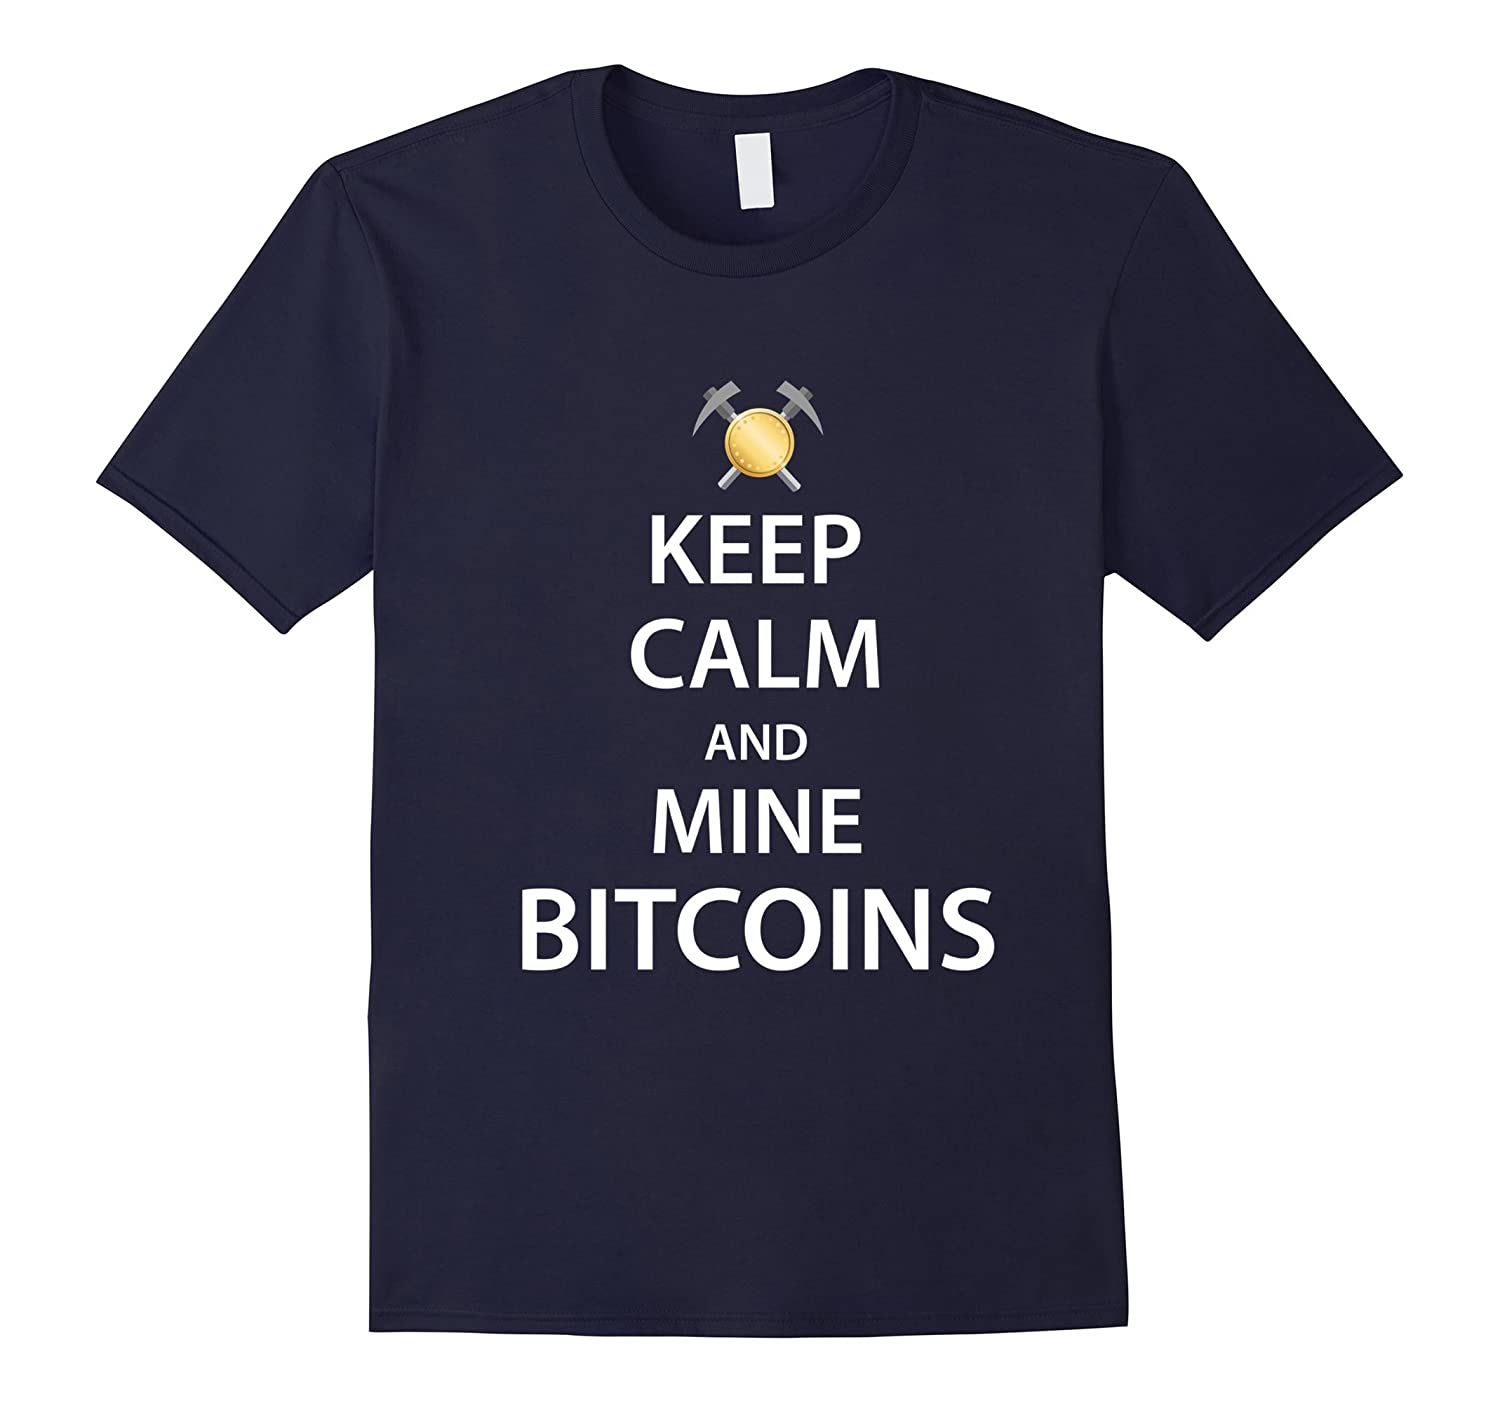 Funny Bitcoin-Shirt for Bitcoin miners and lovers tshirt-TJ